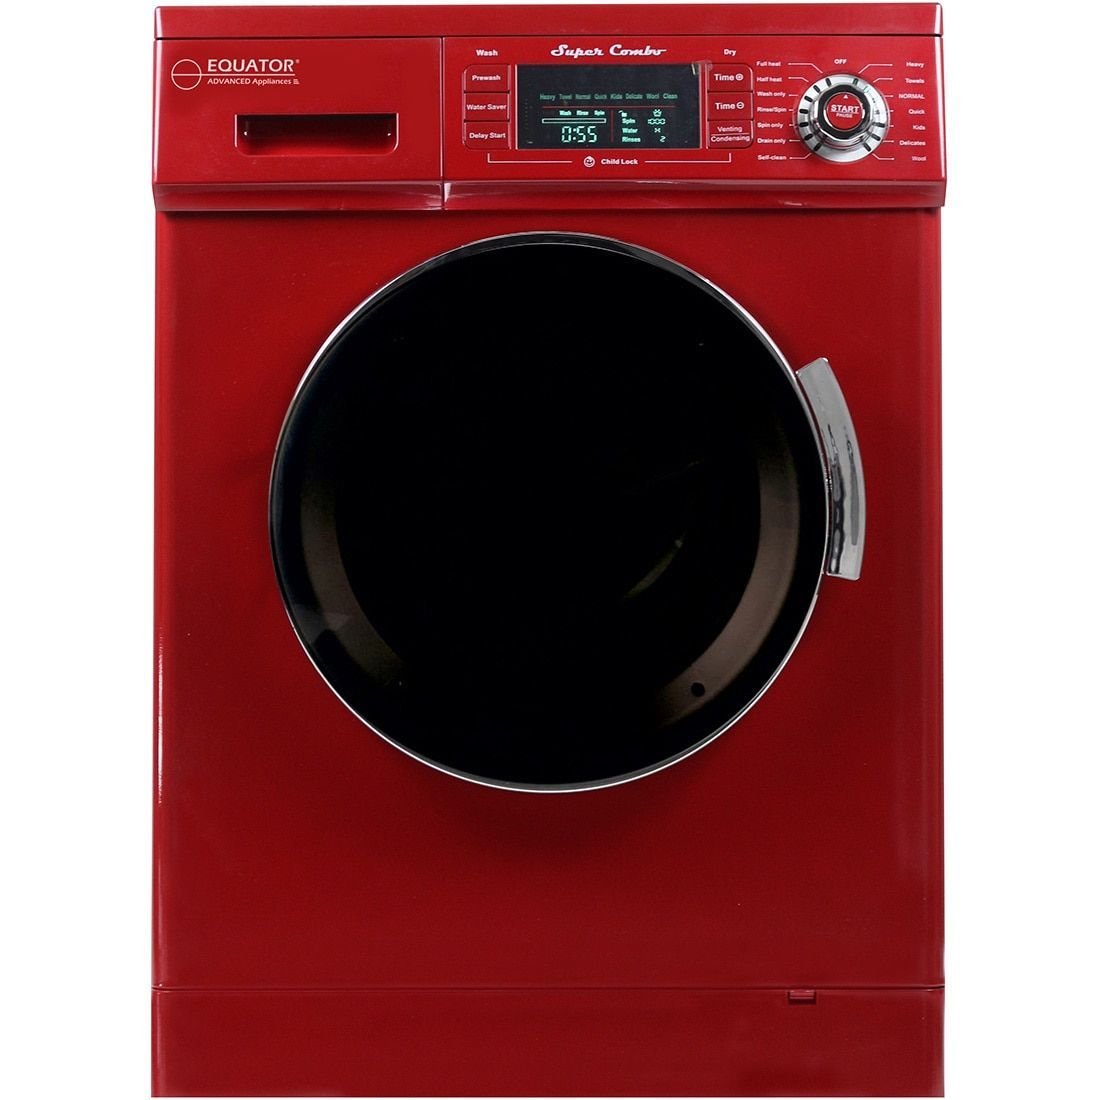 Equator 13 Lbs 1 57 Cu Ft Merlot Convertible Combo Washer Dryer With Optional Venting Condensing Drying Washer Dryer Combo Washer And Dryer Compact Washer